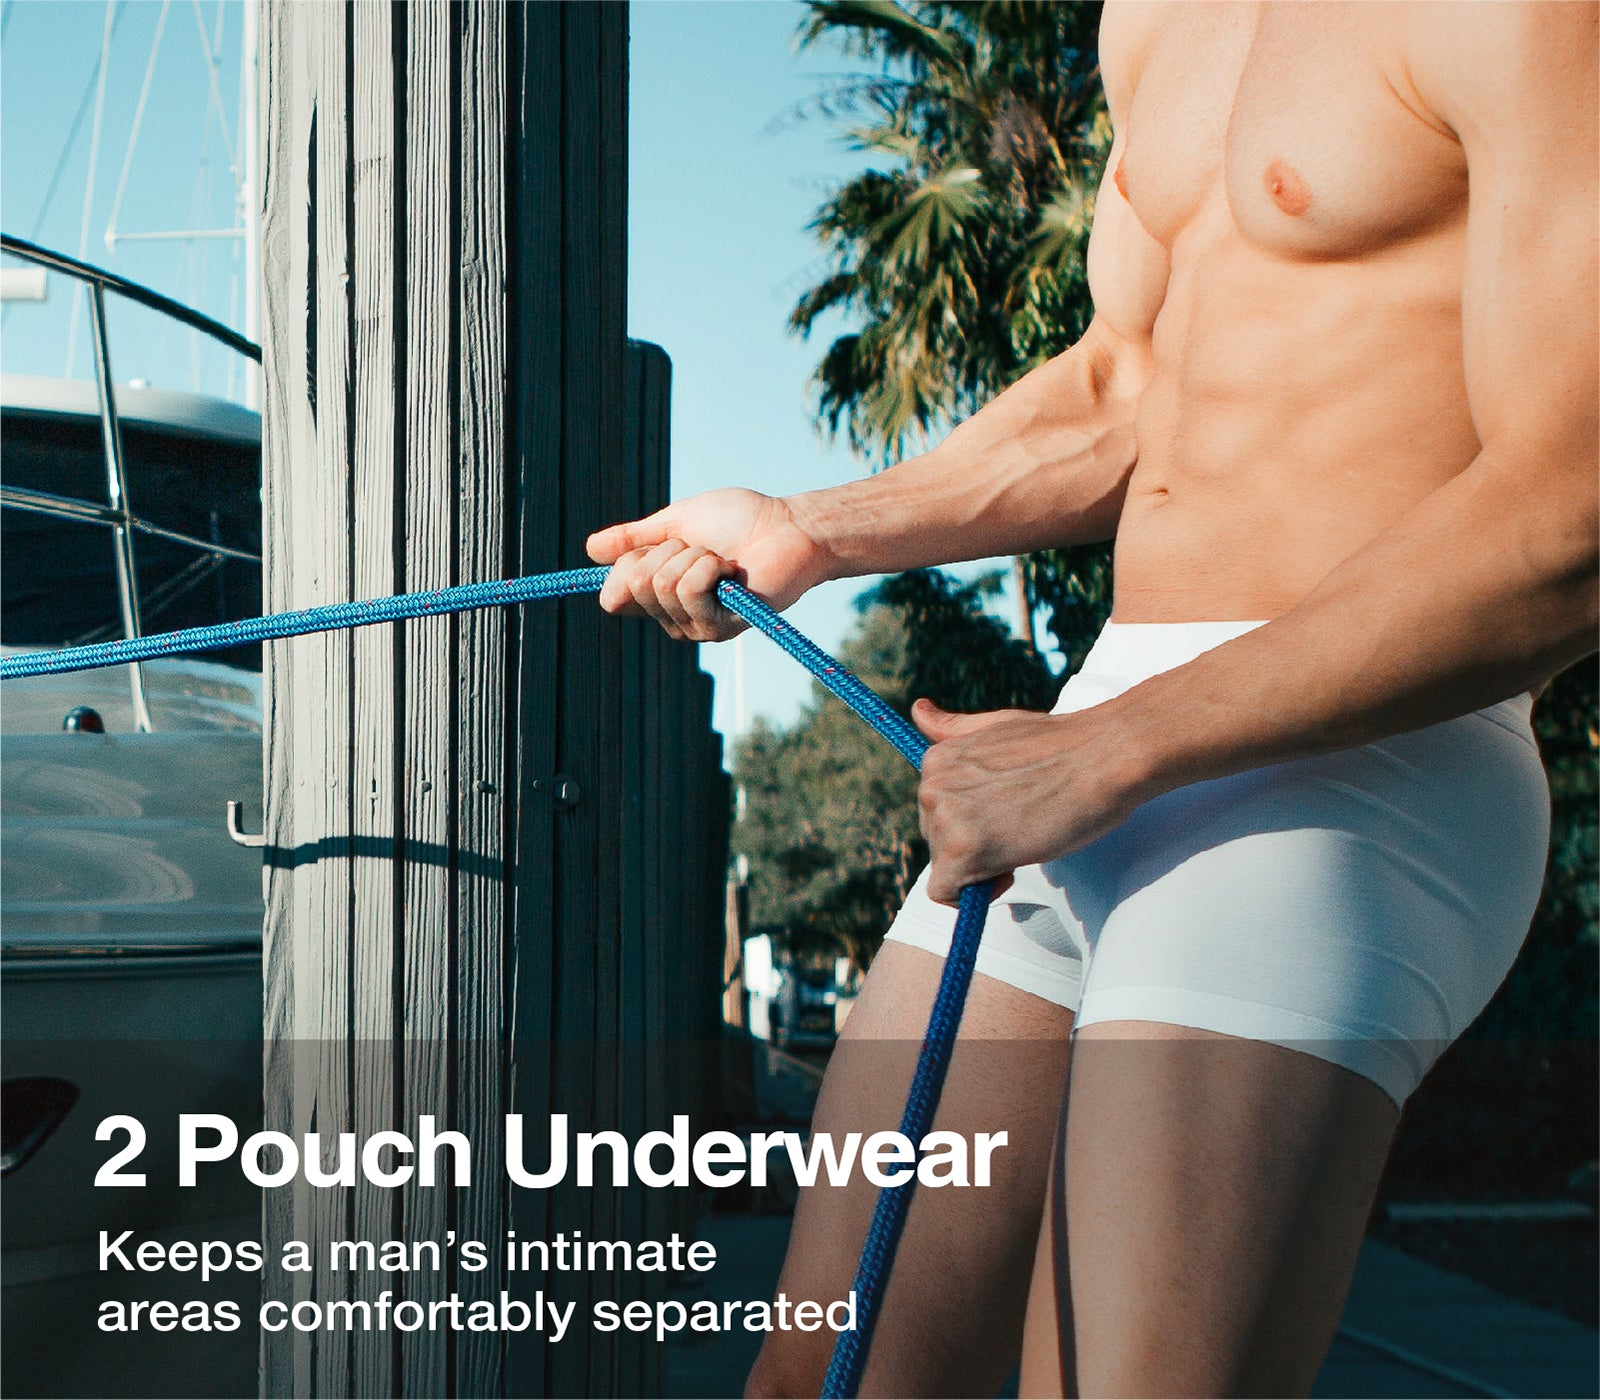 Separatec 2 Pouch underwear, Innovative Daul Pouch Patent Technology, 3 PACK